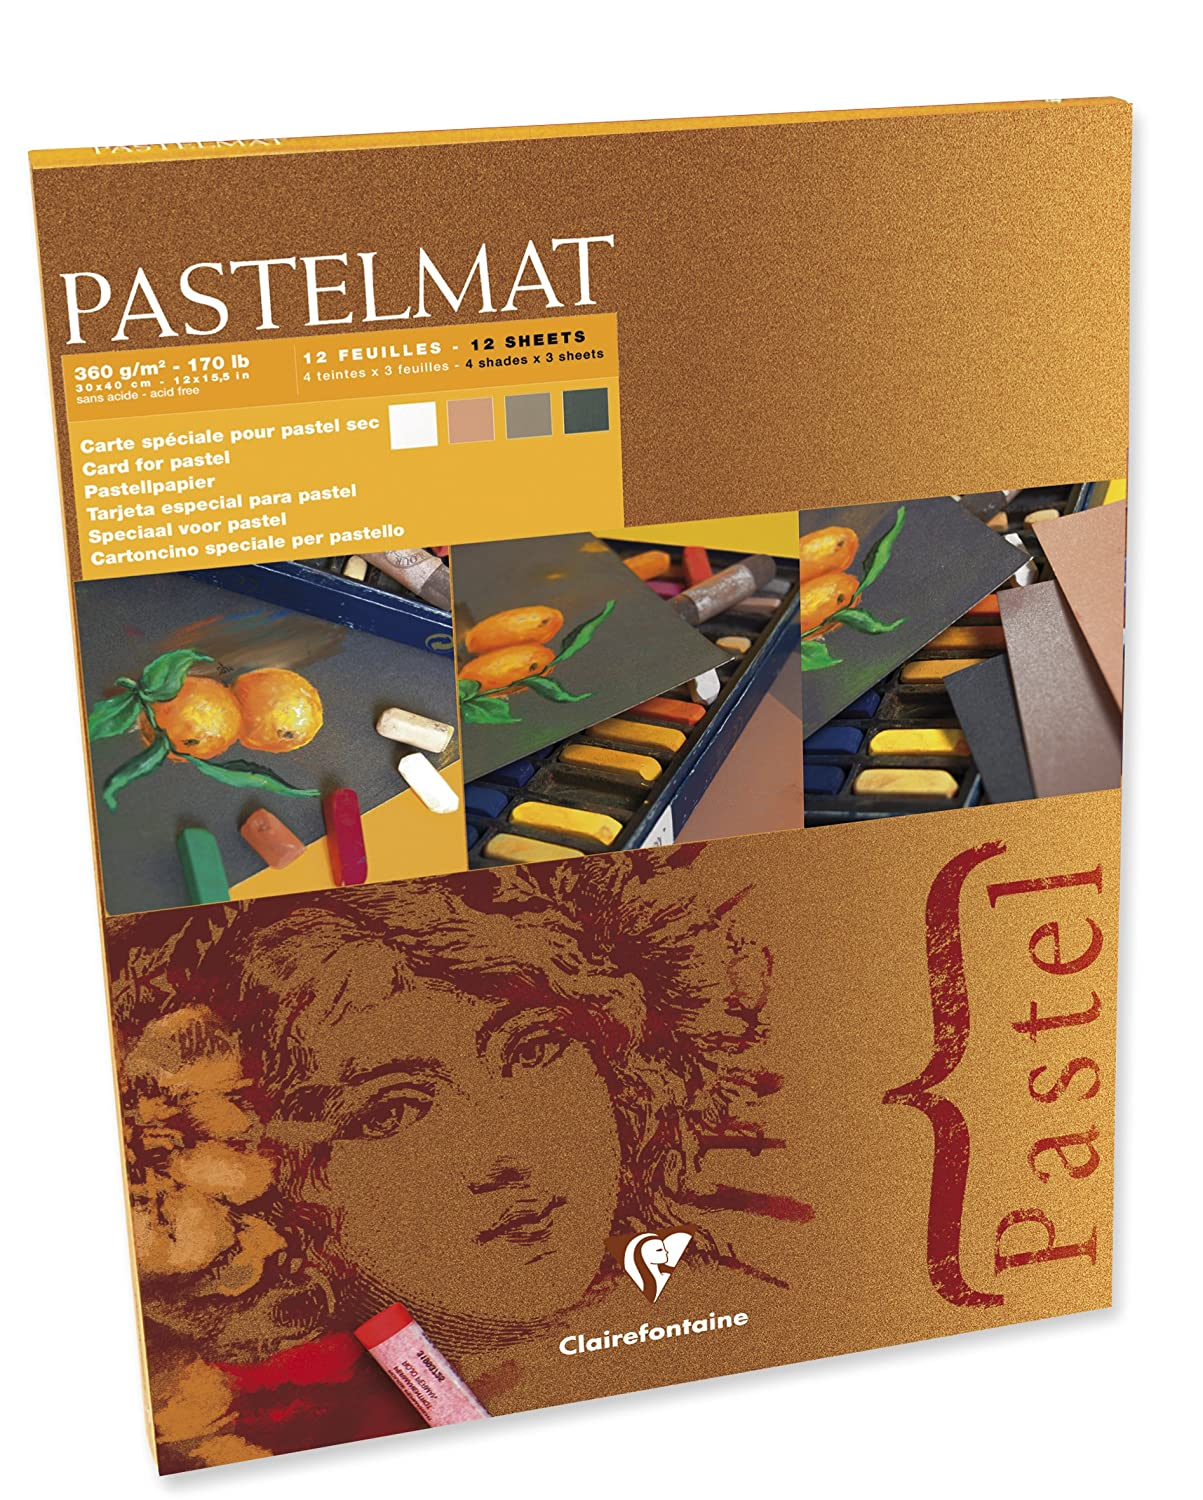 Buy Clairefontaine Glued Pastelmat from Amazon